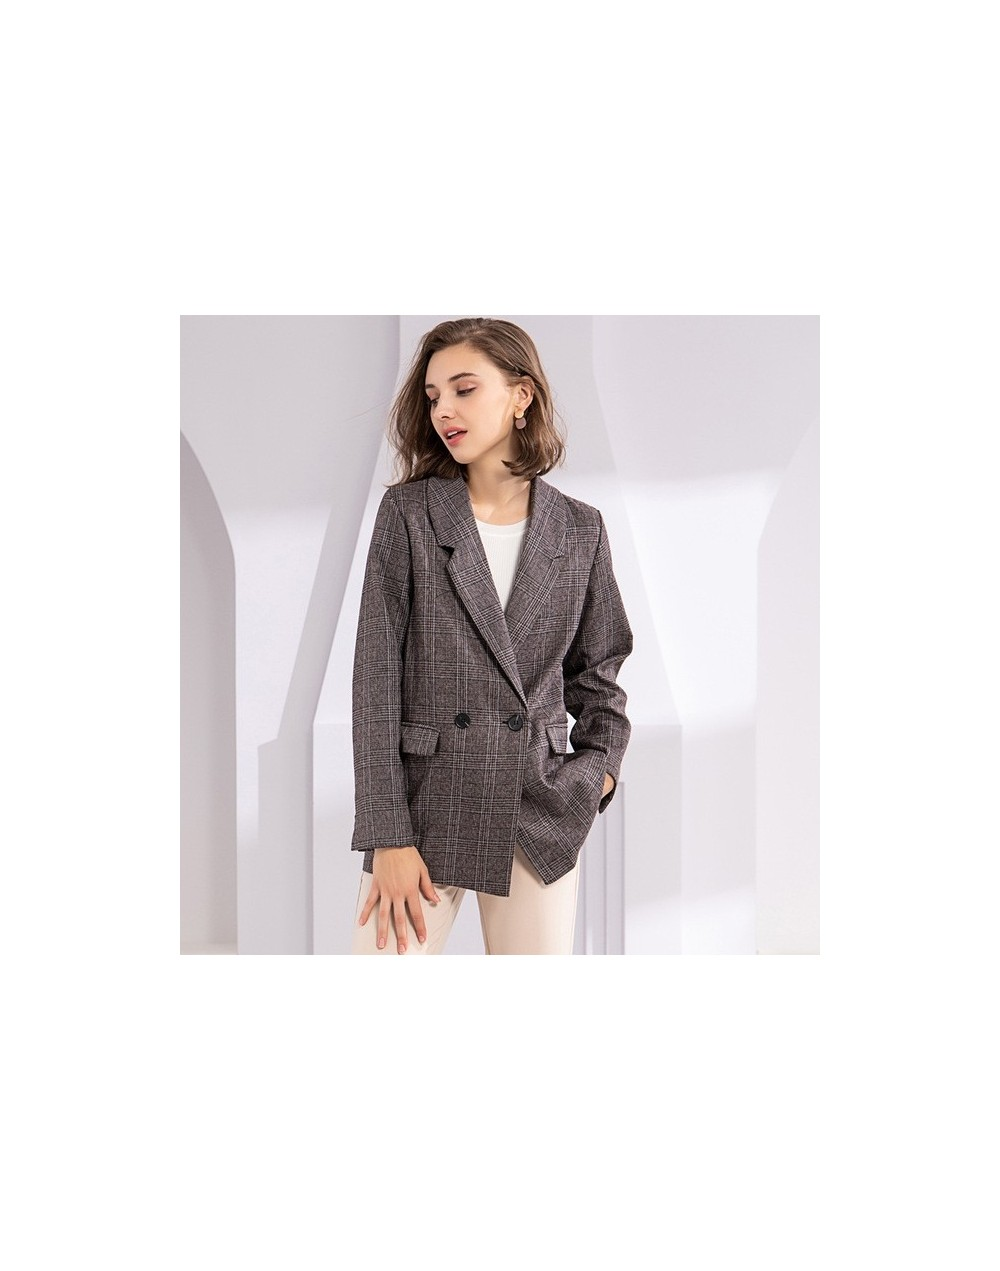 New 2019 Autumn Winter Women's Blazers Plaid Double Breasted Pockets Formal Jackets Notched Outerwear Tops JK7113 - Brown - ...